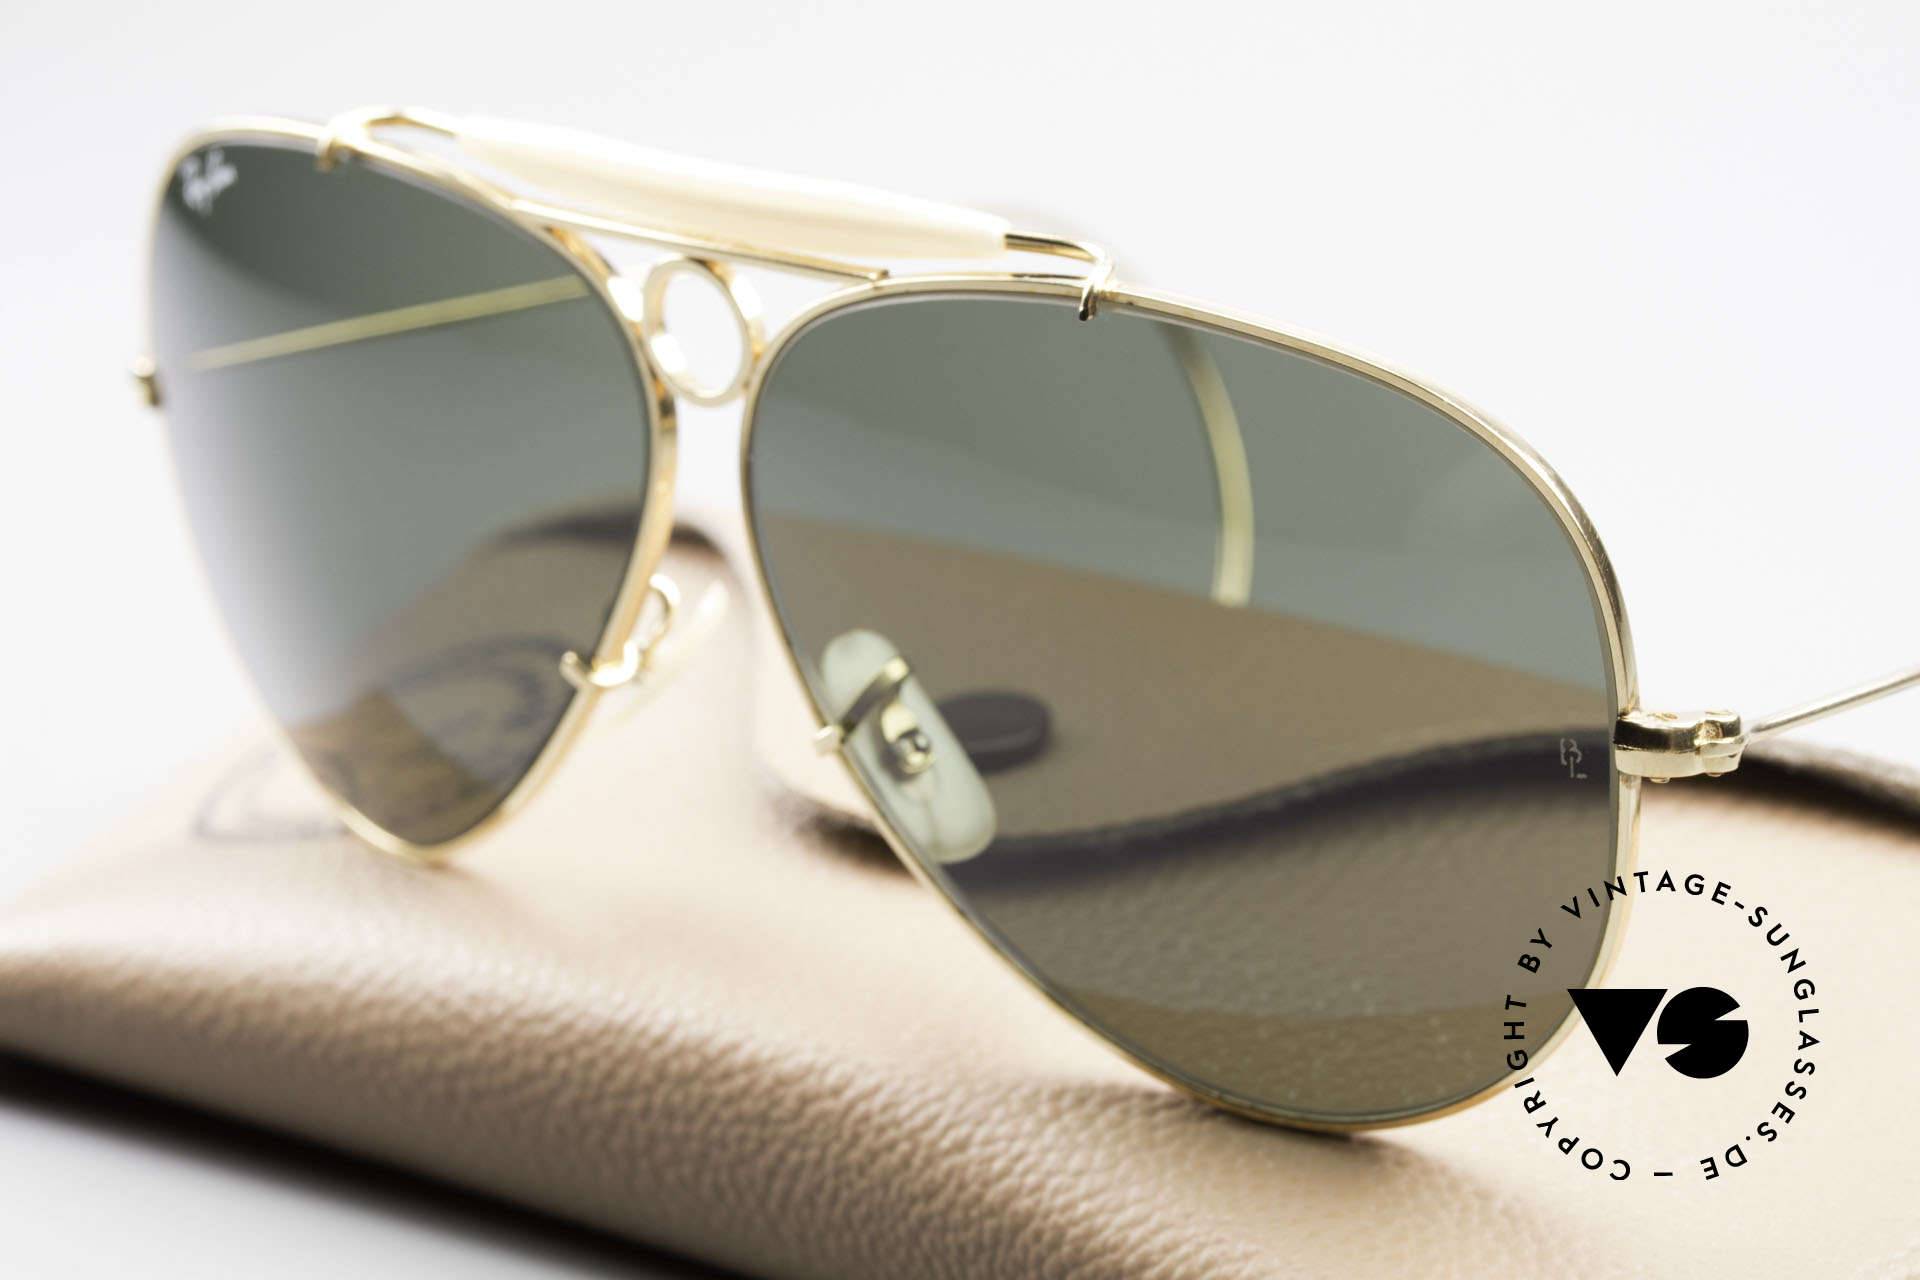 Ray Ban Shooter Sport G15 Bausch & Lomb Sun Lenses, Size: medium, Made for Men